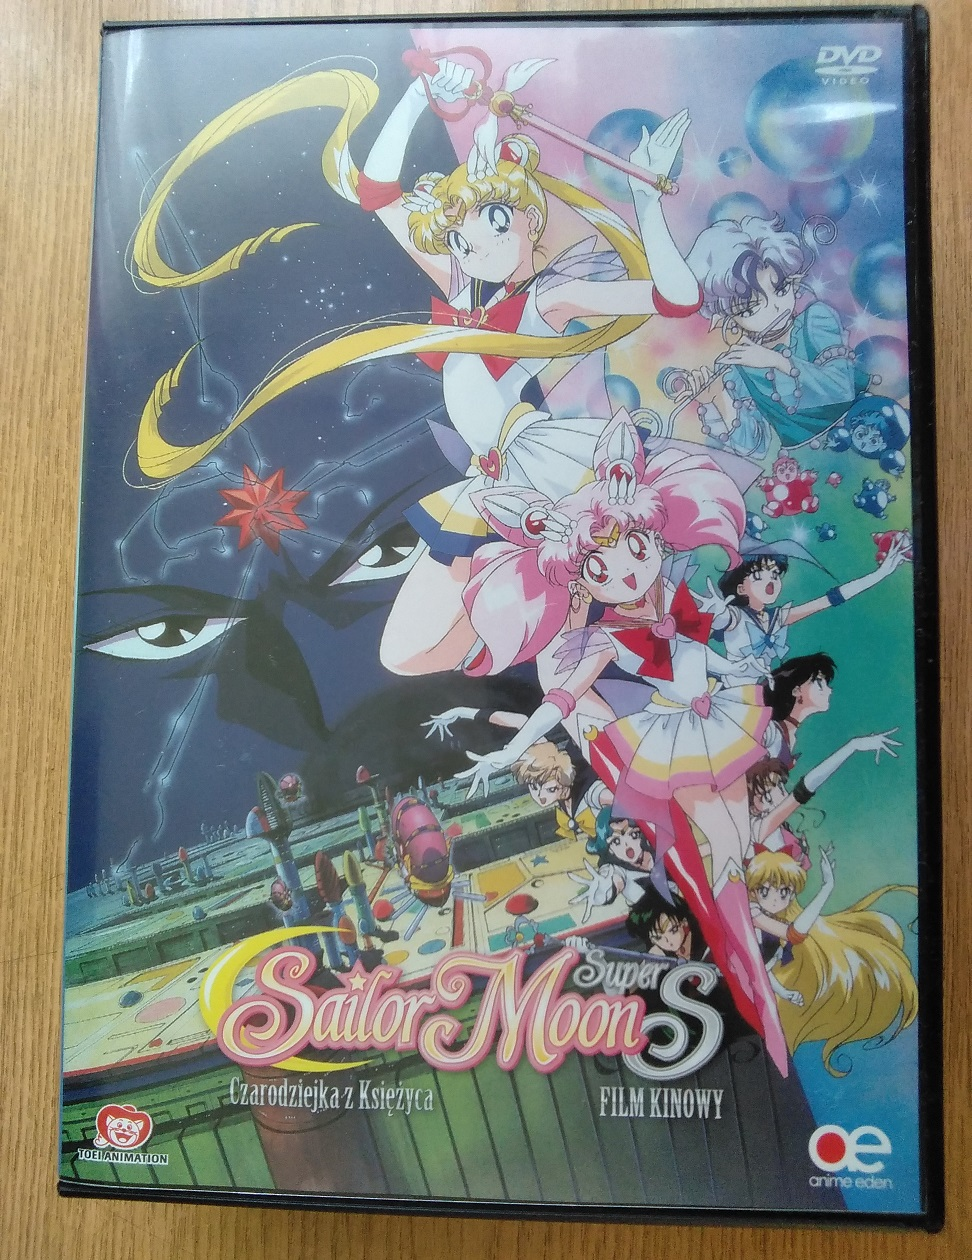 Sailor Moon Super S film kinowy.jpg